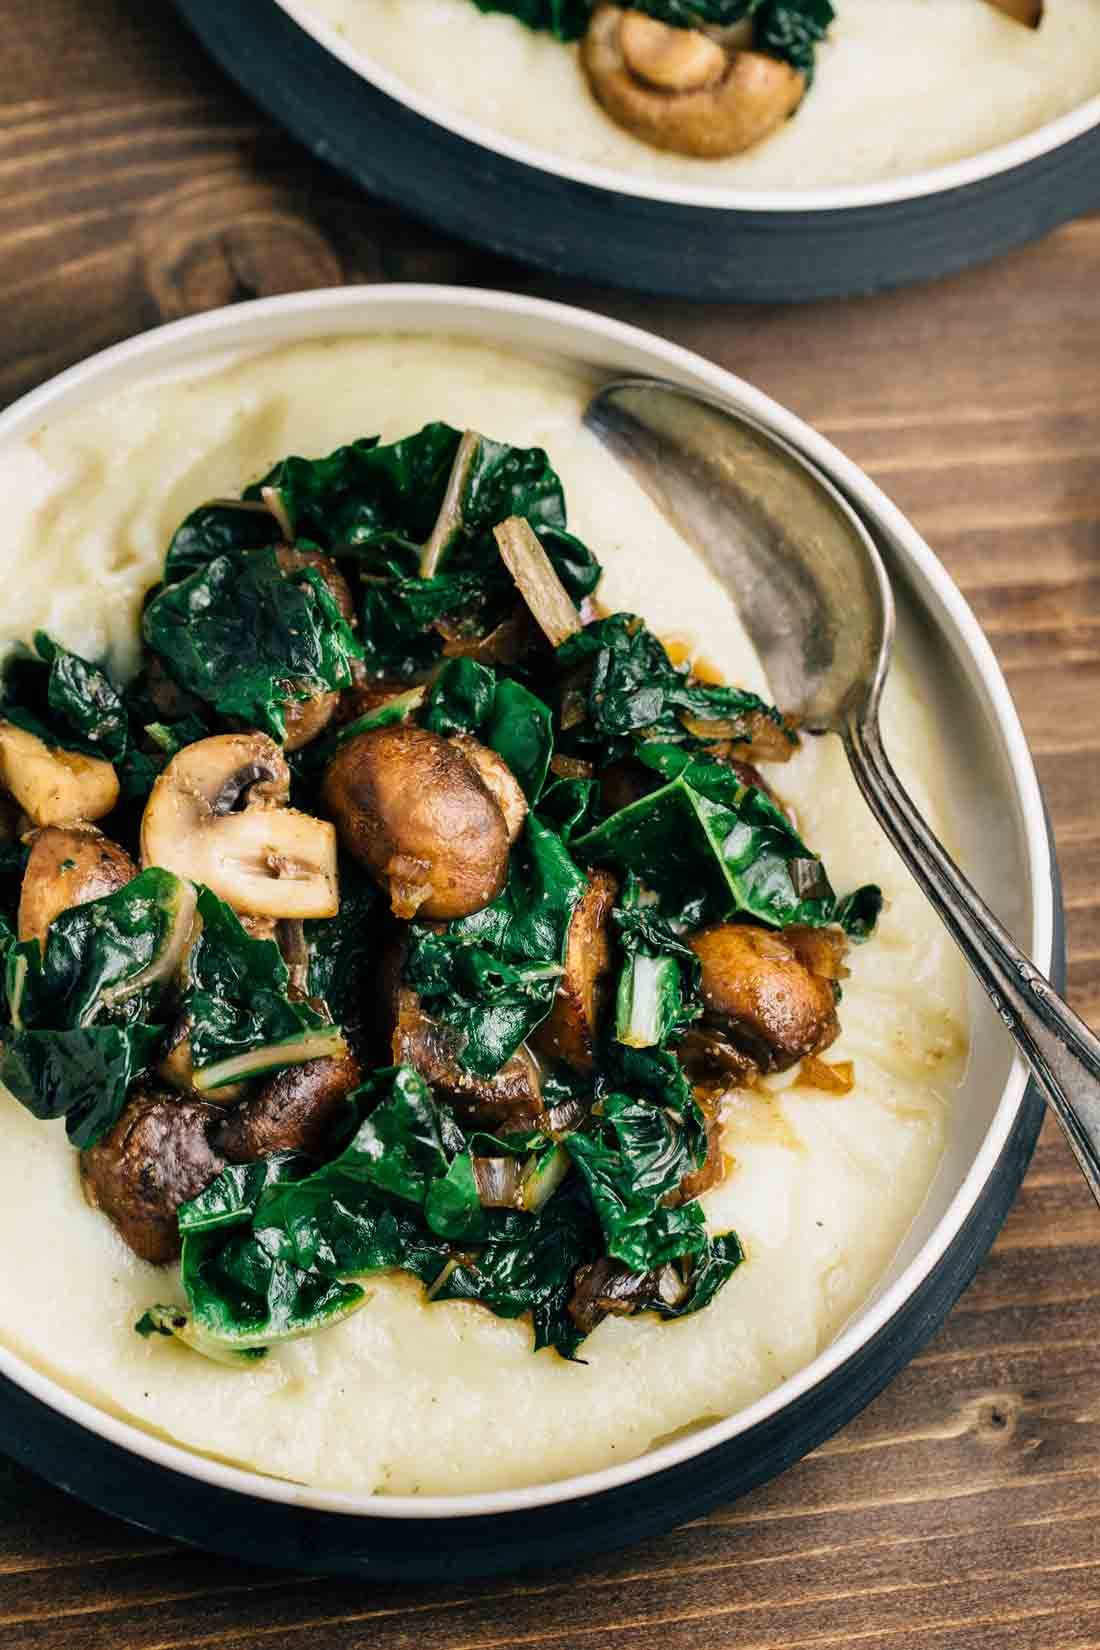 Cauliflower Puree with Sautéed Mushrooms and Swiss Chard in a black bowl.